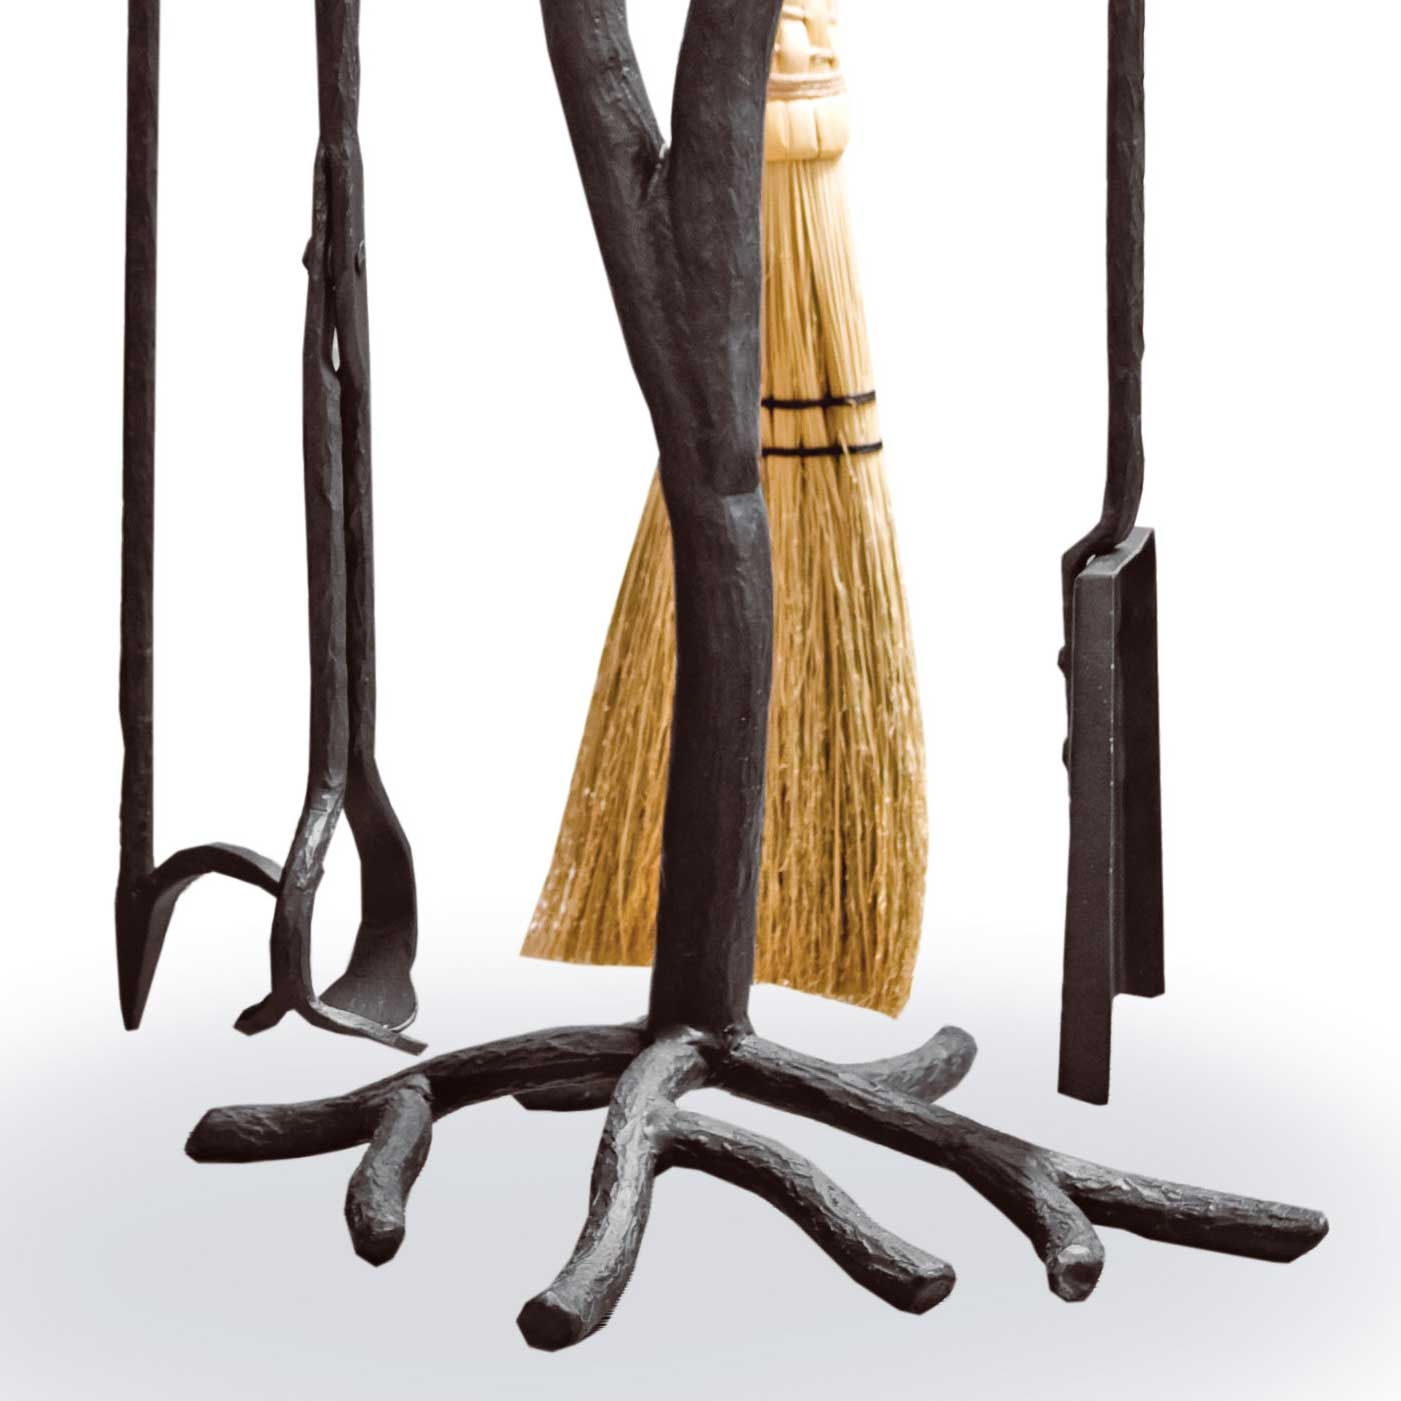 wrought iron southfork fireplace tool set free shipping www